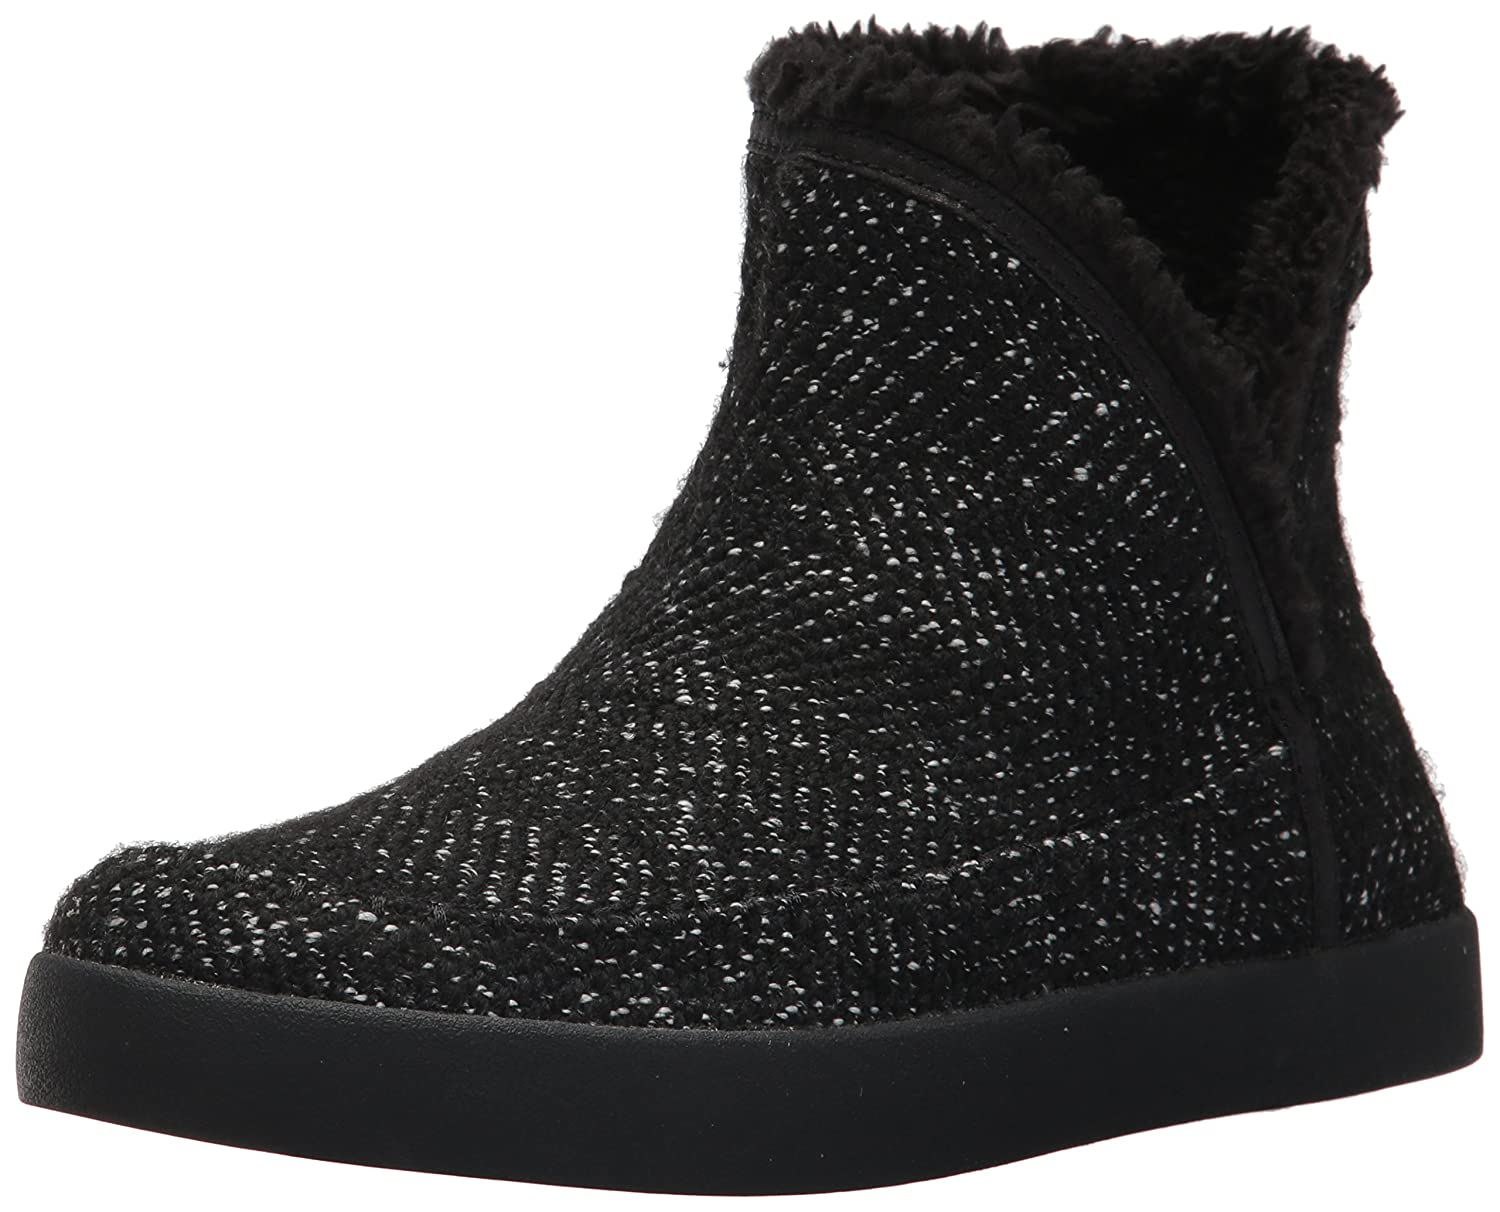 Skechers BOBS from Women's Bobs B-Loved-Fall 4 You Ankle Boot B076DJCSD3 5.5 B(M) US|Black